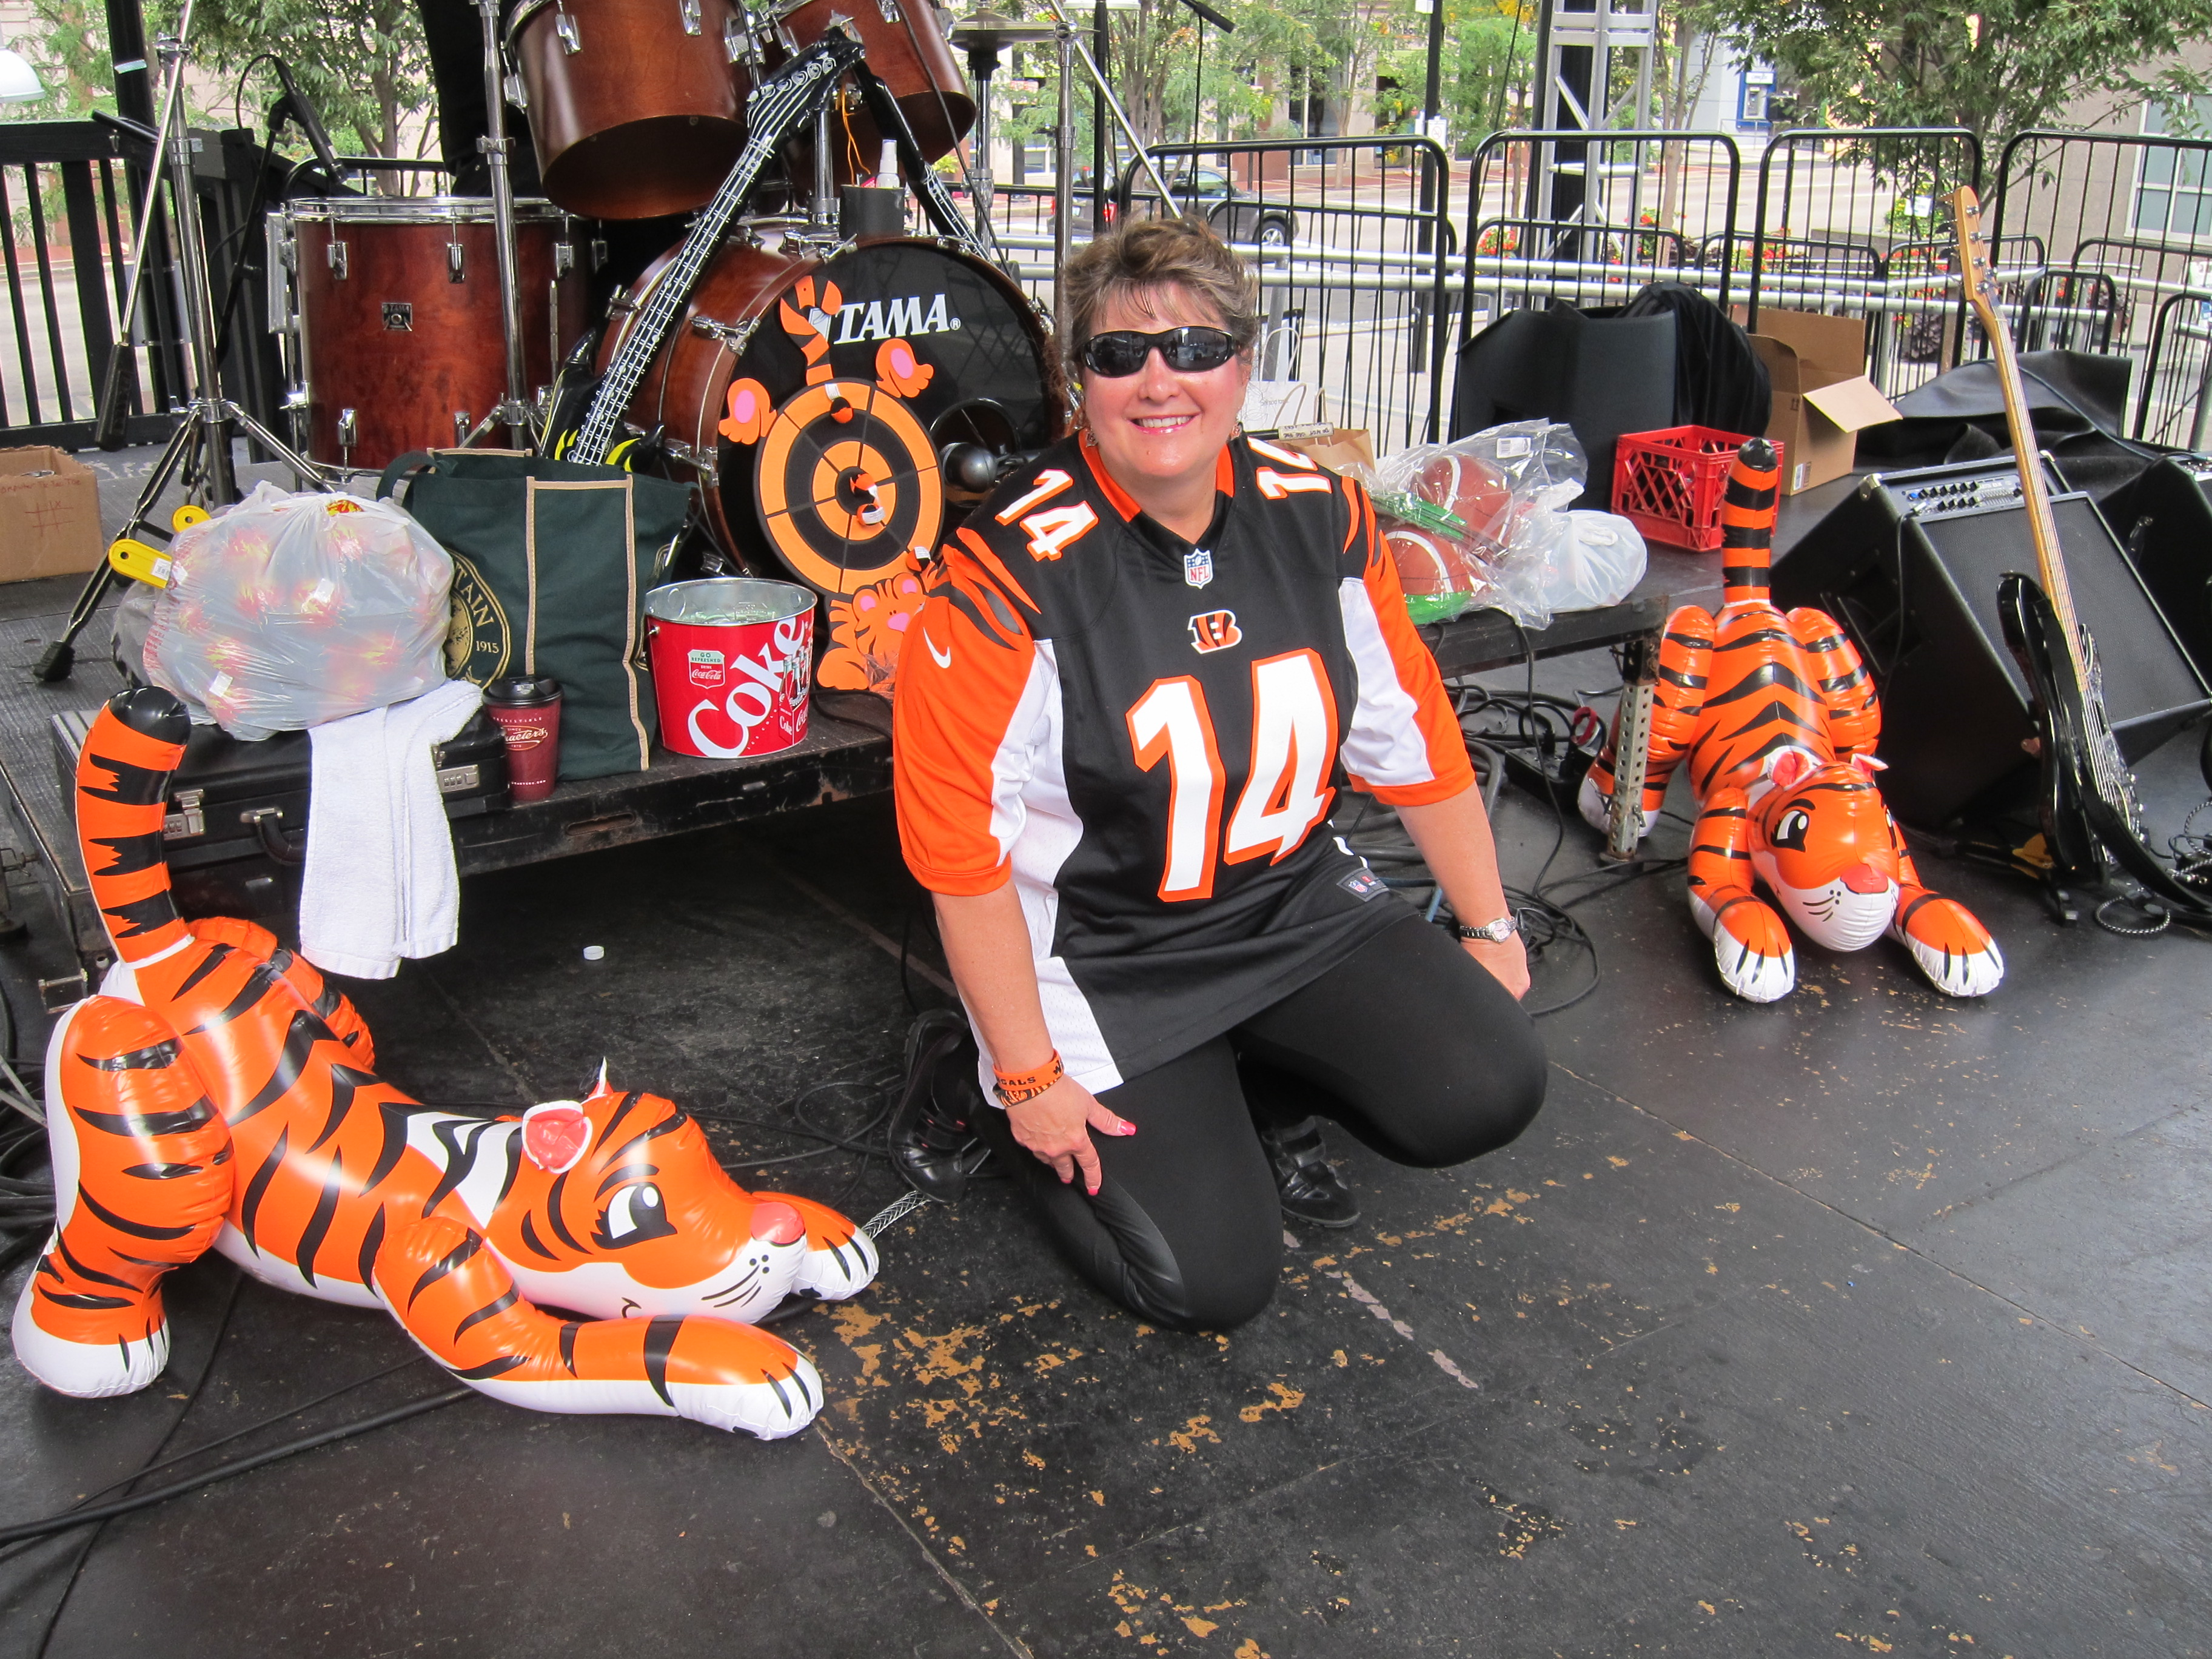 Bengal's Tailgate Party 10-27-15